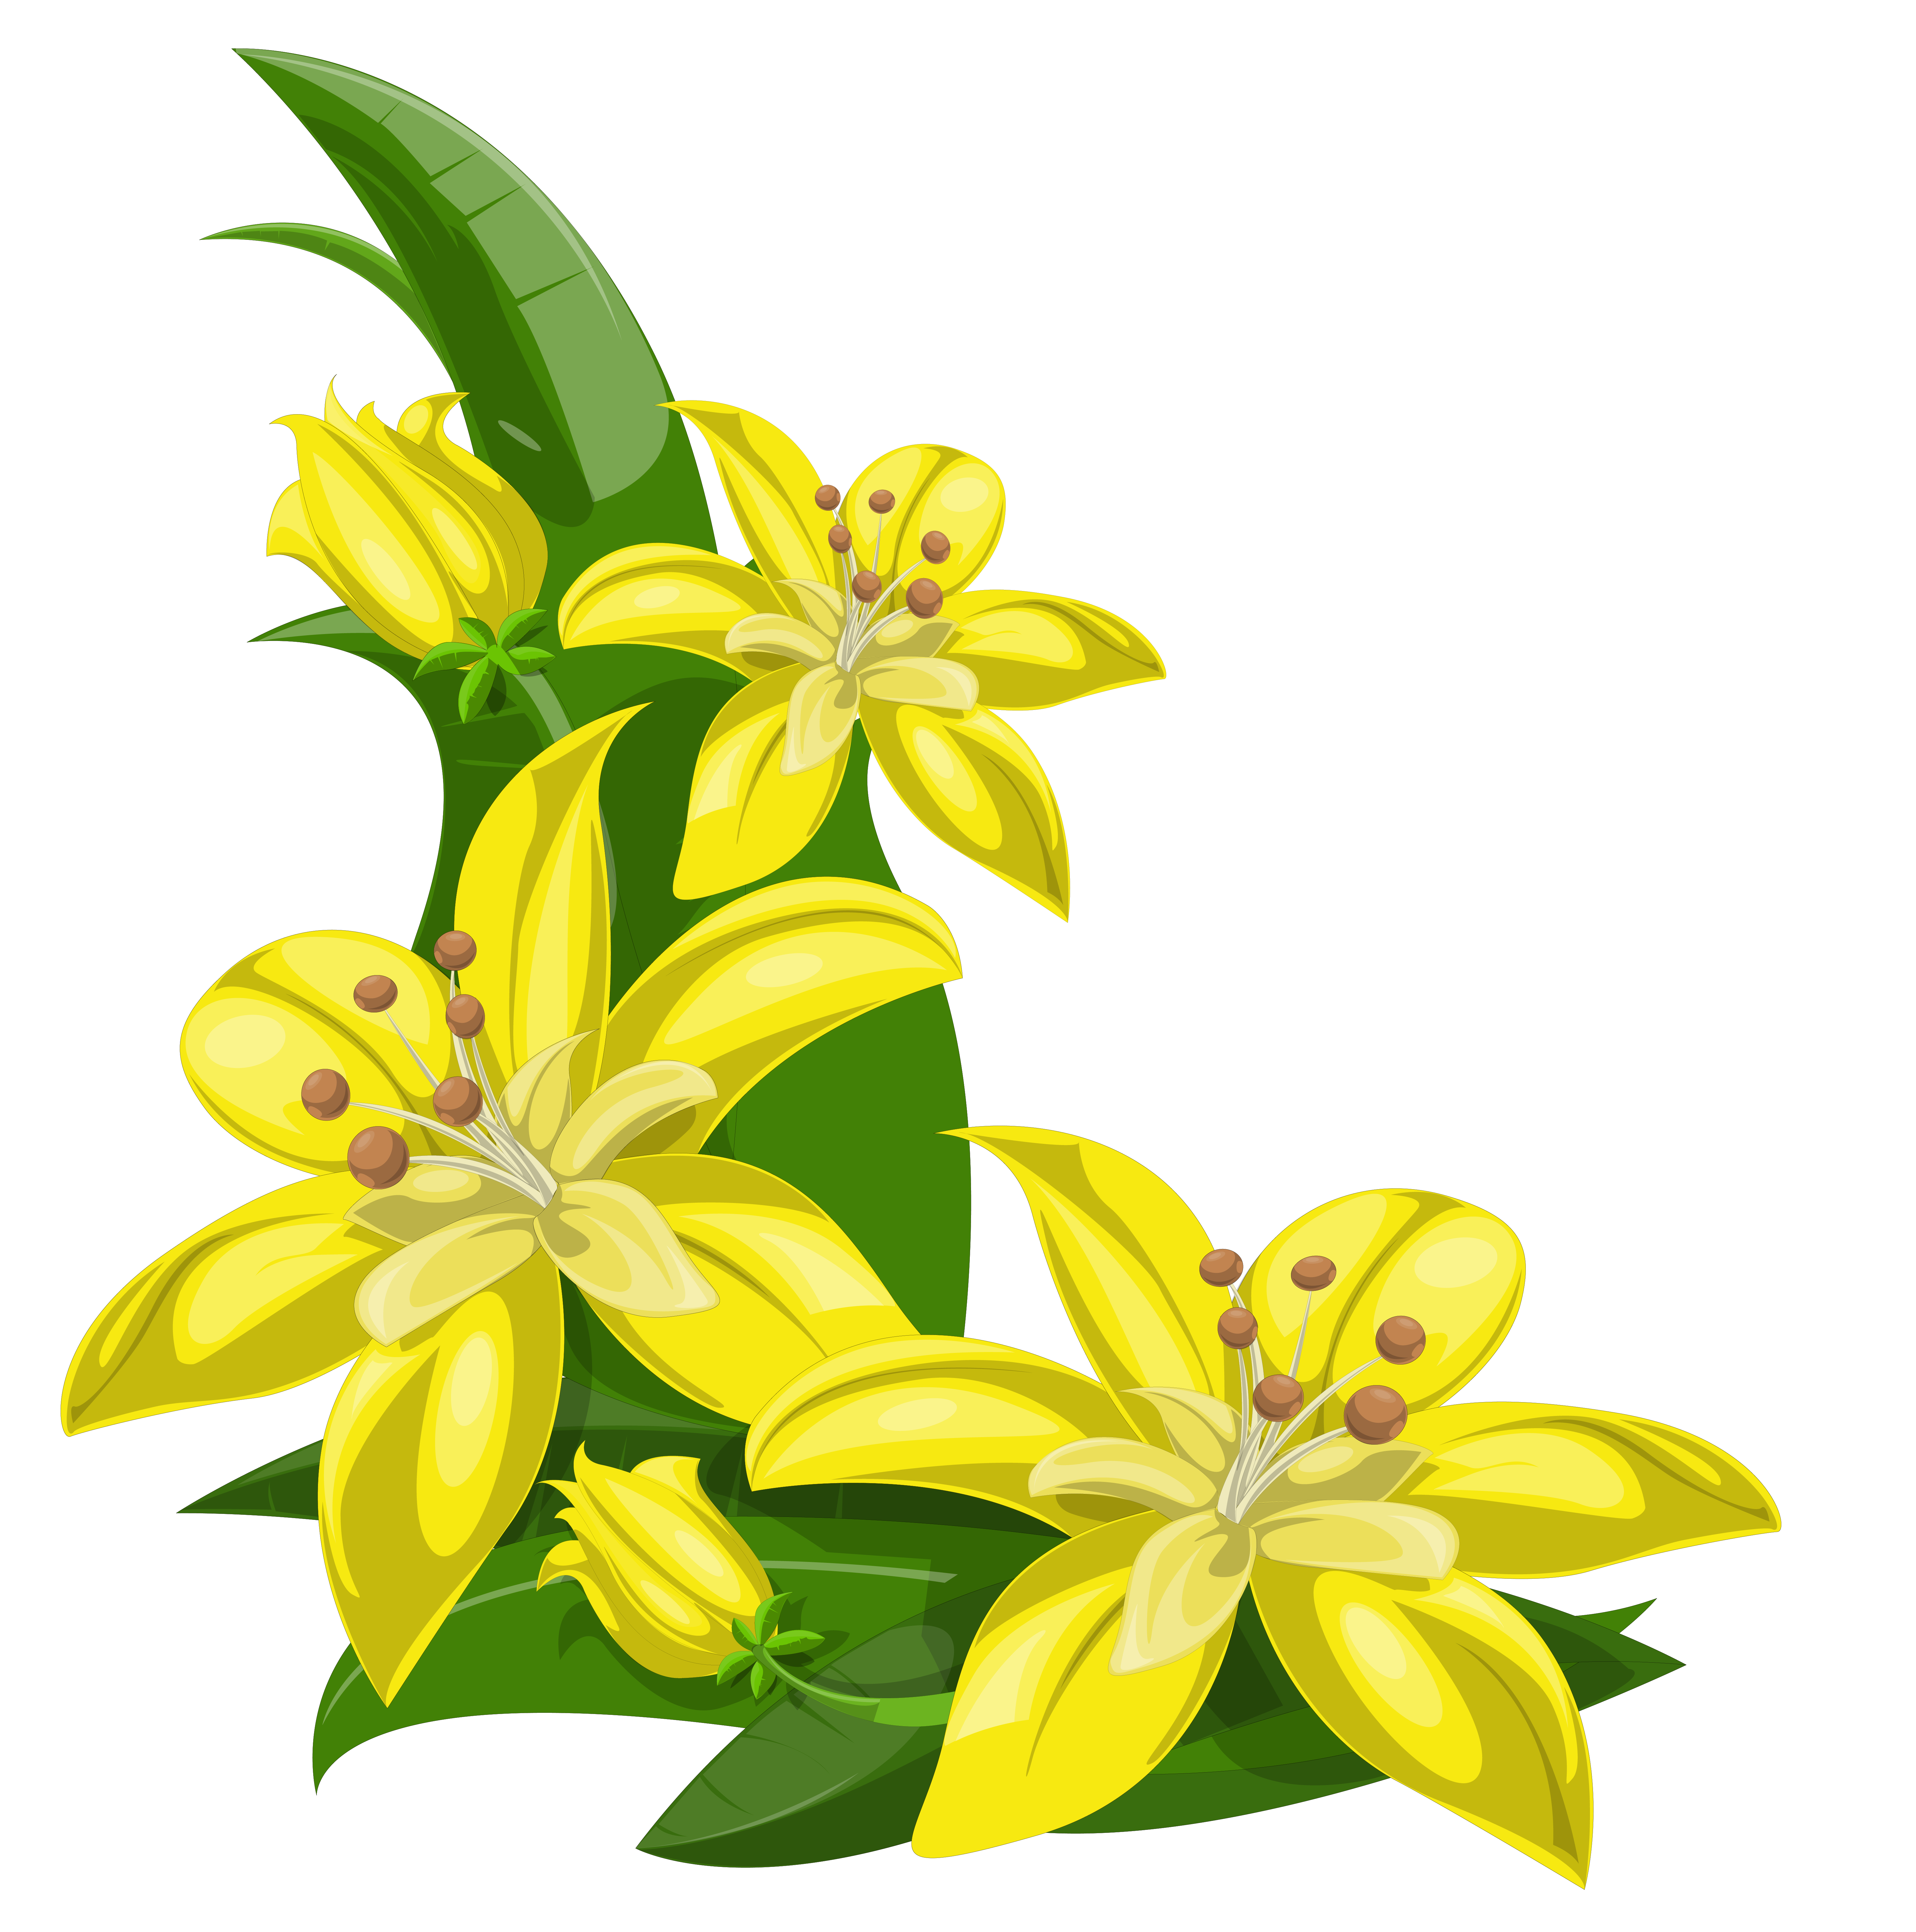 Lily Flowers Clipart At Getdrawings Free For Personal Use Lily